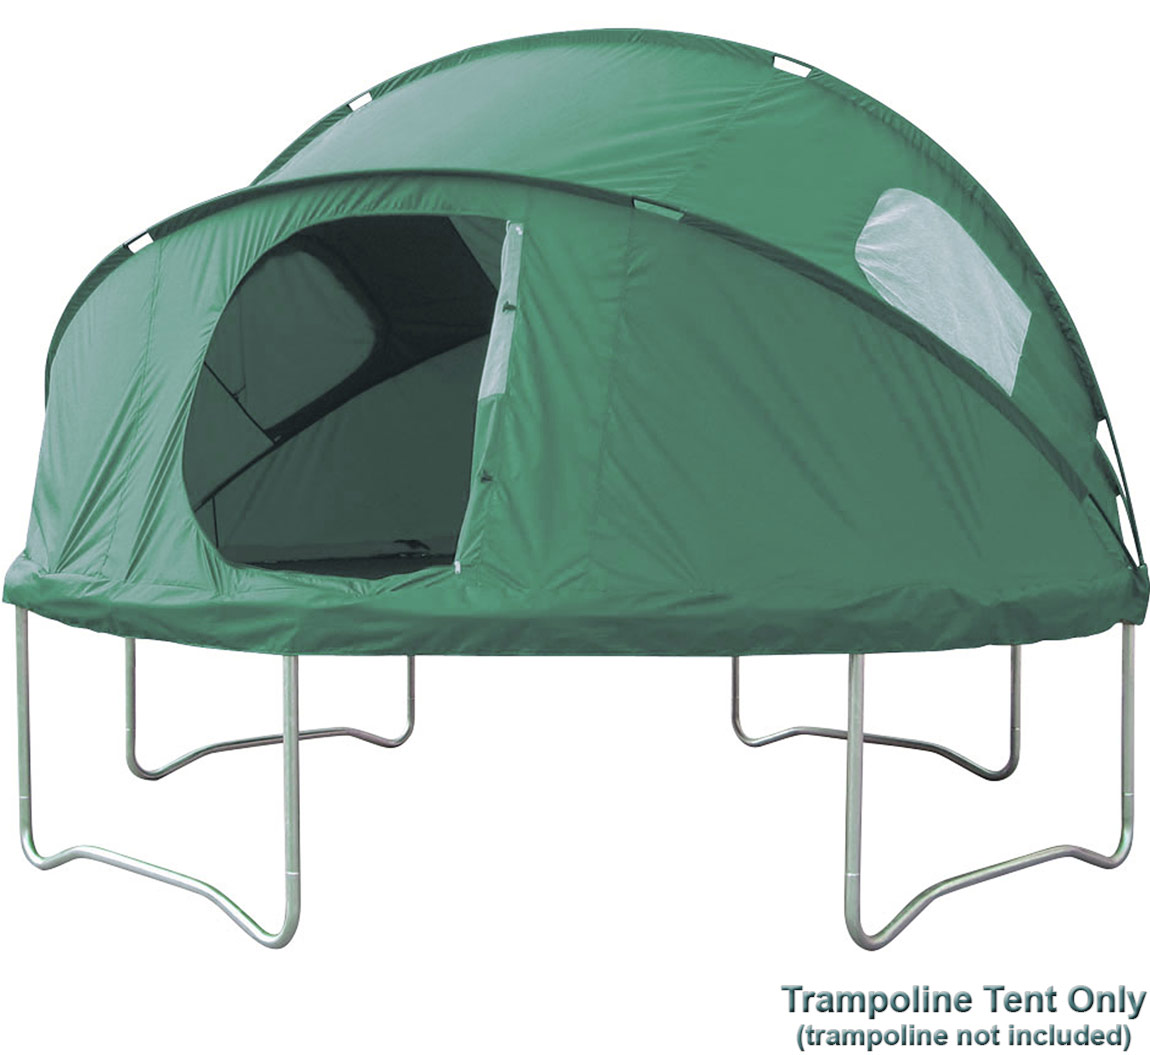 8ft Tr&oline Tent  sc 1 st  Big Game Hunters & 8ft Trampoline Tent | 8ft Trampoline Tents